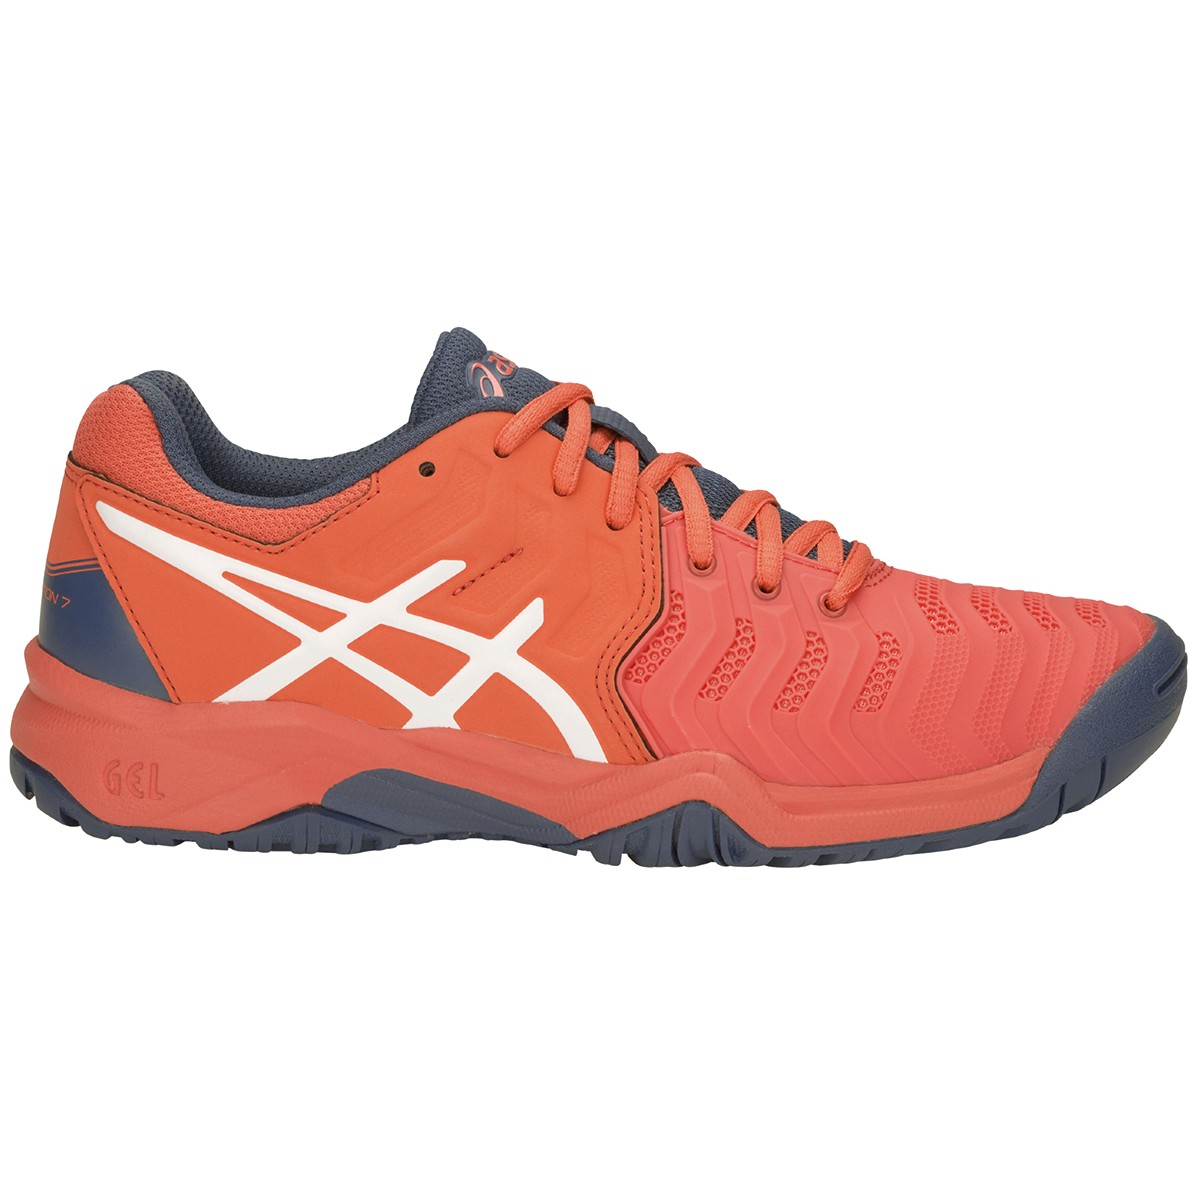 JUNIOR ASICS RESOLUTION 7 GS ALL COURT SHOES